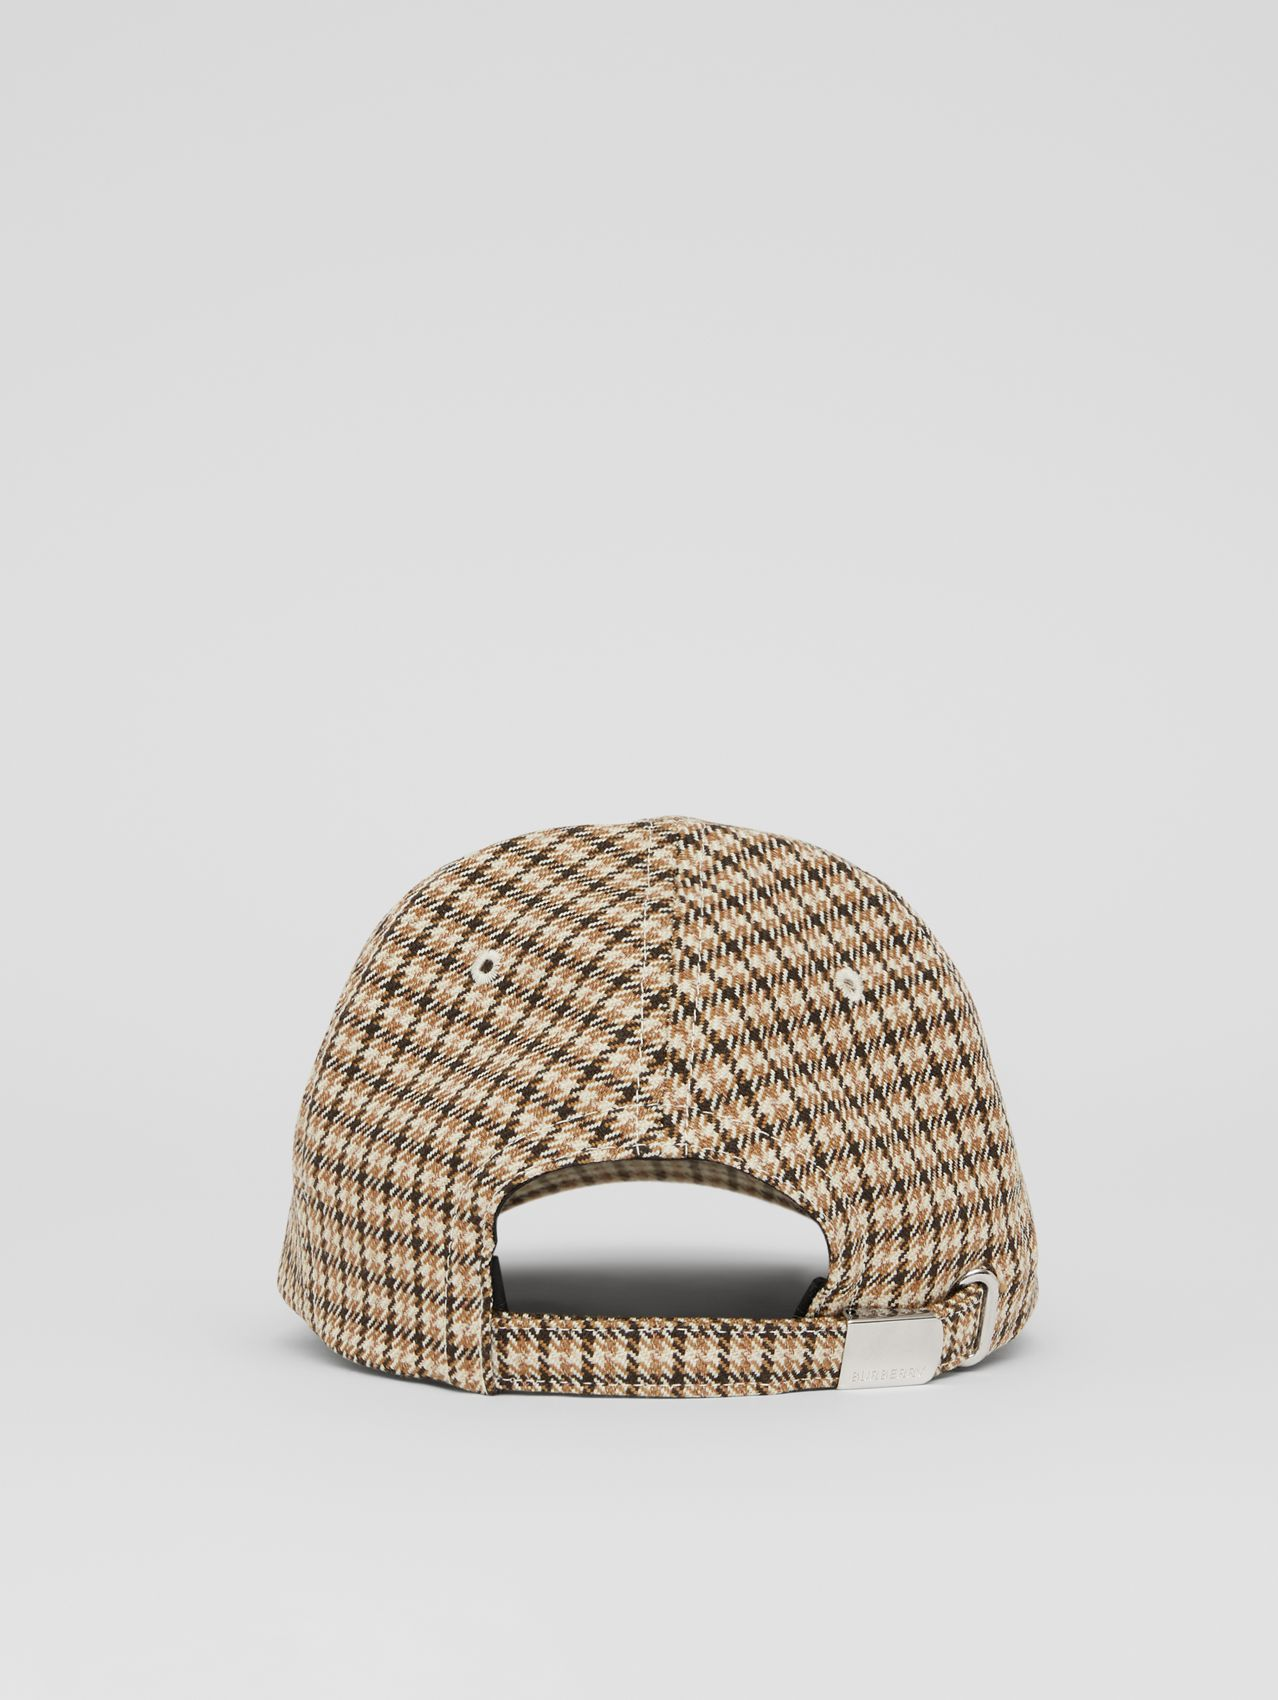 Monogram Motif Houndstooth Check Baseball Cap in Fawn